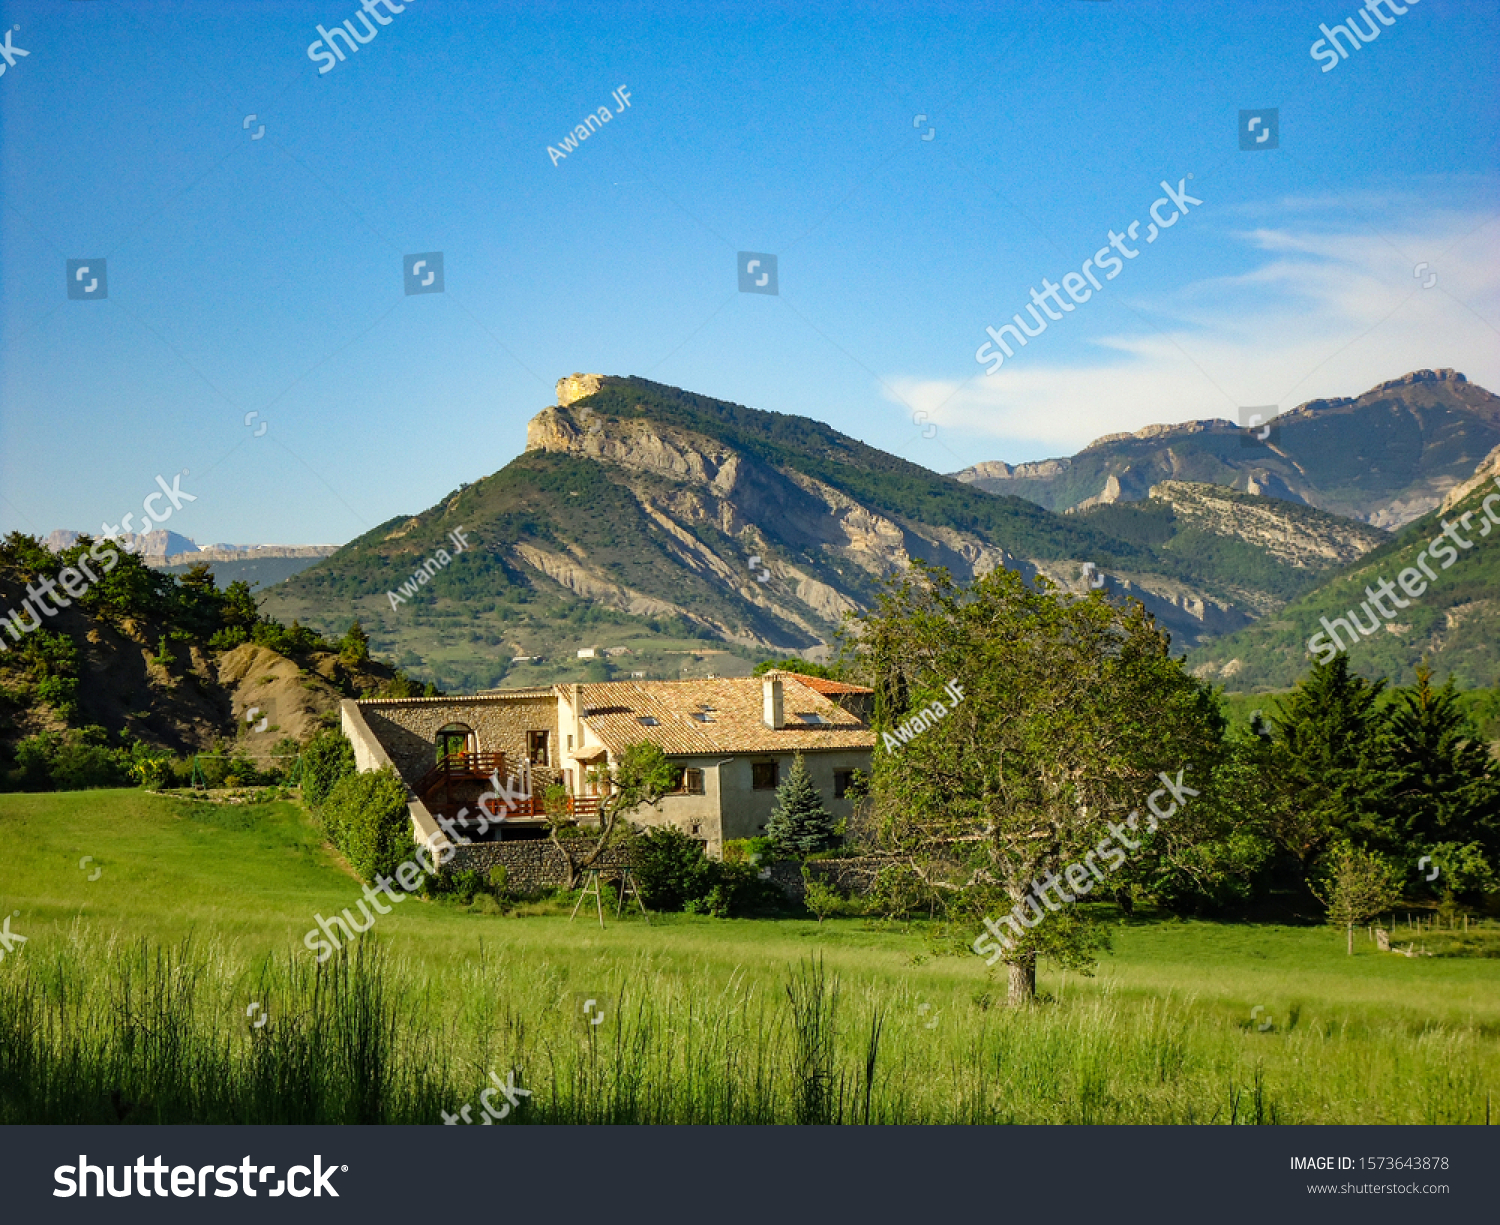 stock-photo-lagrand-france-august-proven